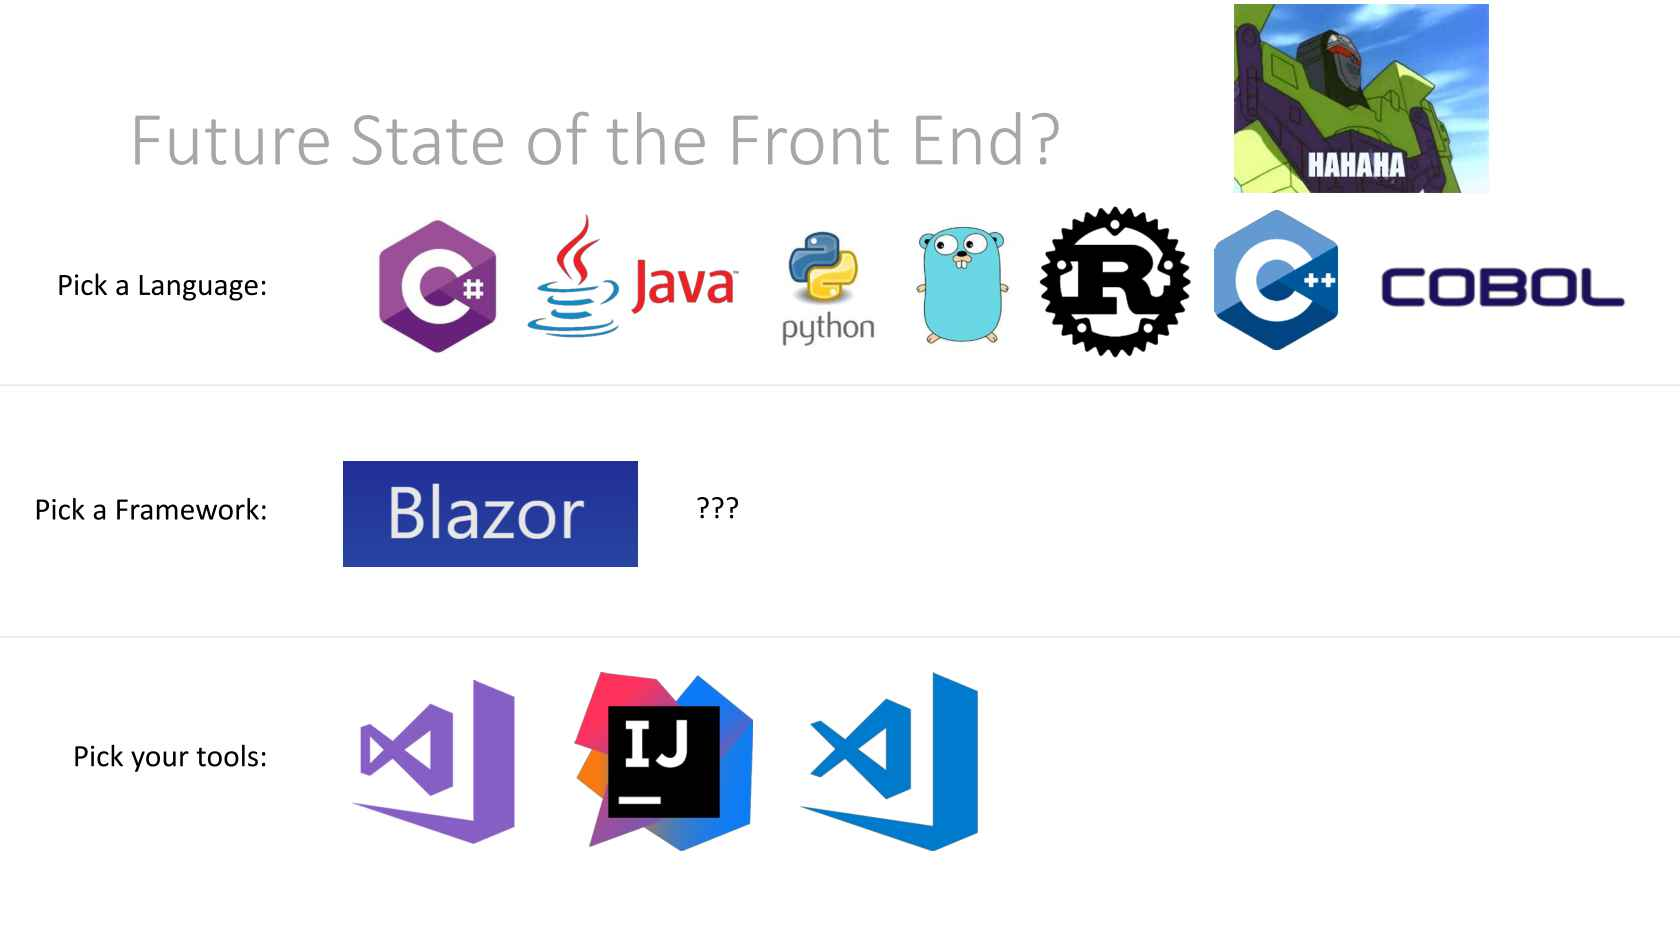 Blazor: C# Running in the Browser via WebAssembly